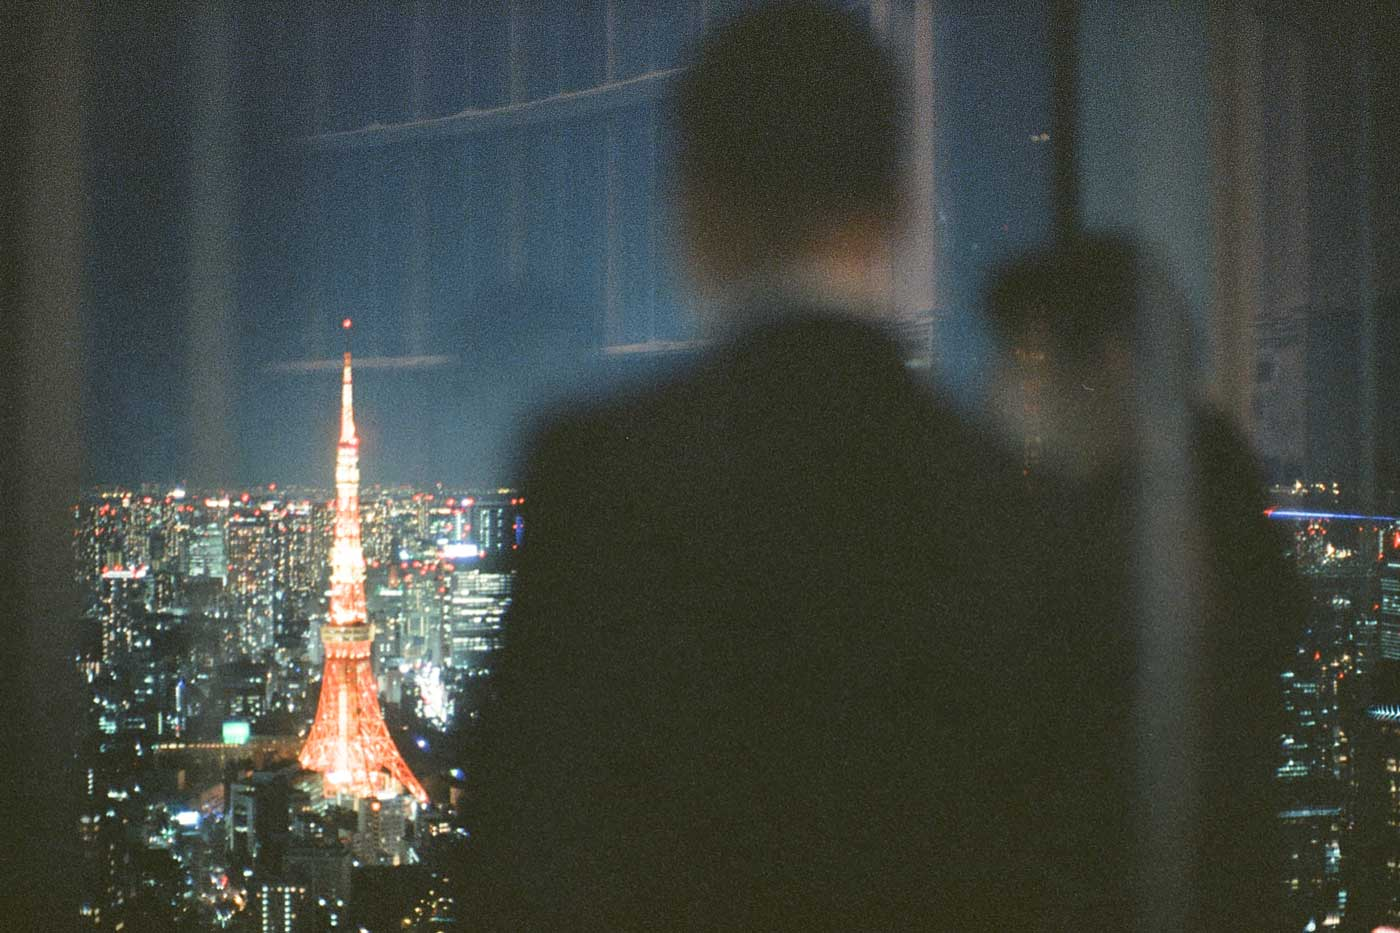 analog-film-review-kodak-vision3-vision-3-5219-7219-500T-800T-tungsten-photography-tokyo-japan-museum-night-view-bokeh-couple-as-foreground-tokyotower-tower-noctilux-50mm-f1.0-f1-50-v4-build-in-hood-e60